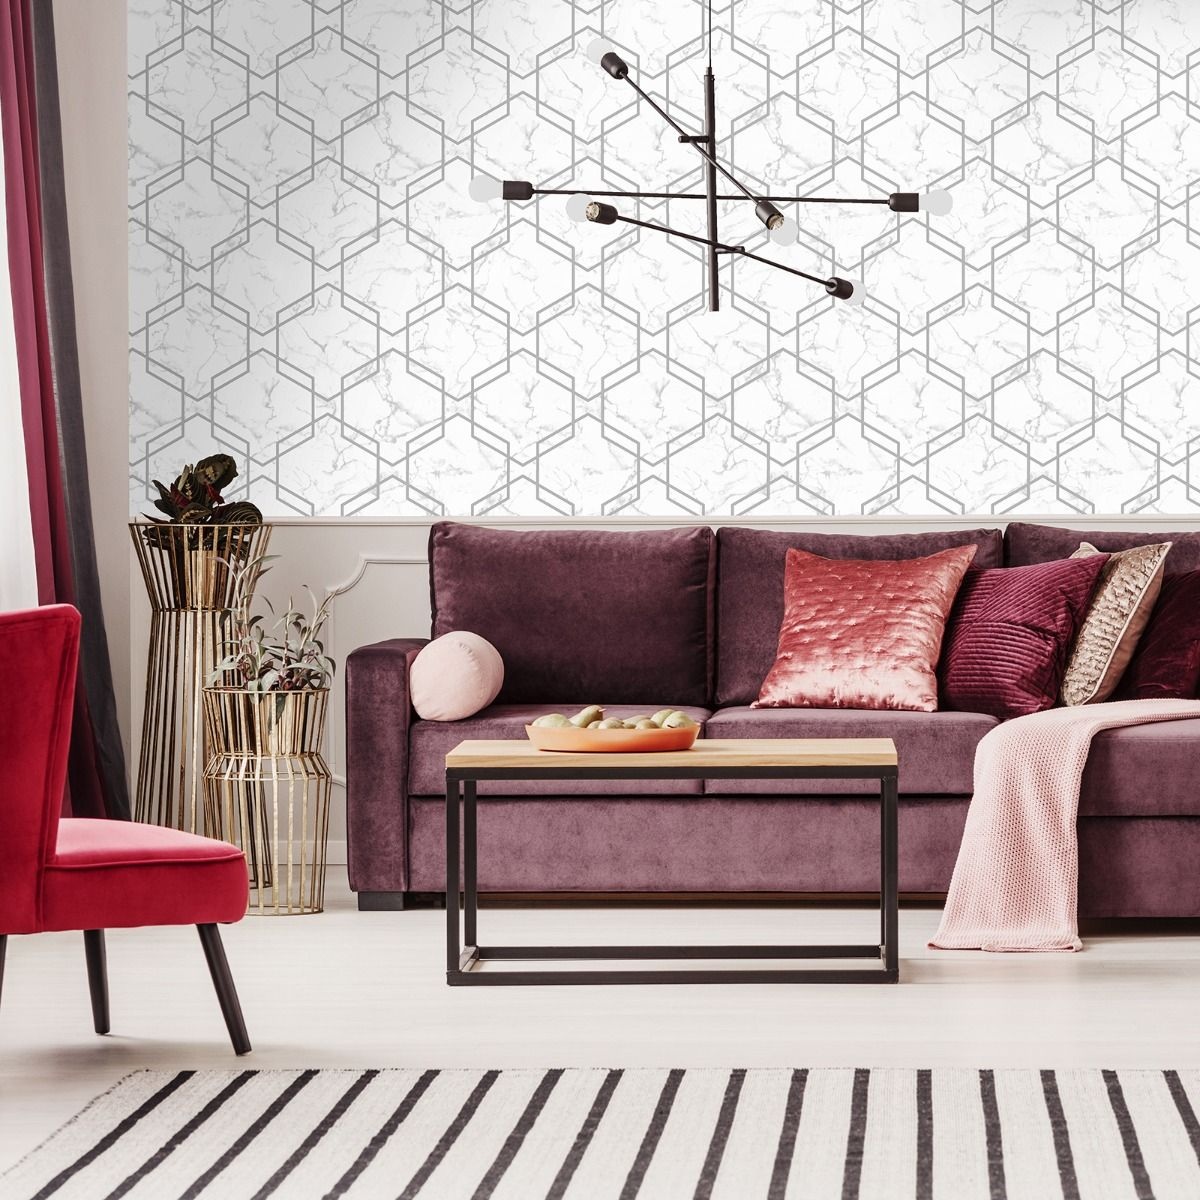 holden wallpaper competition two hundred pounds prize